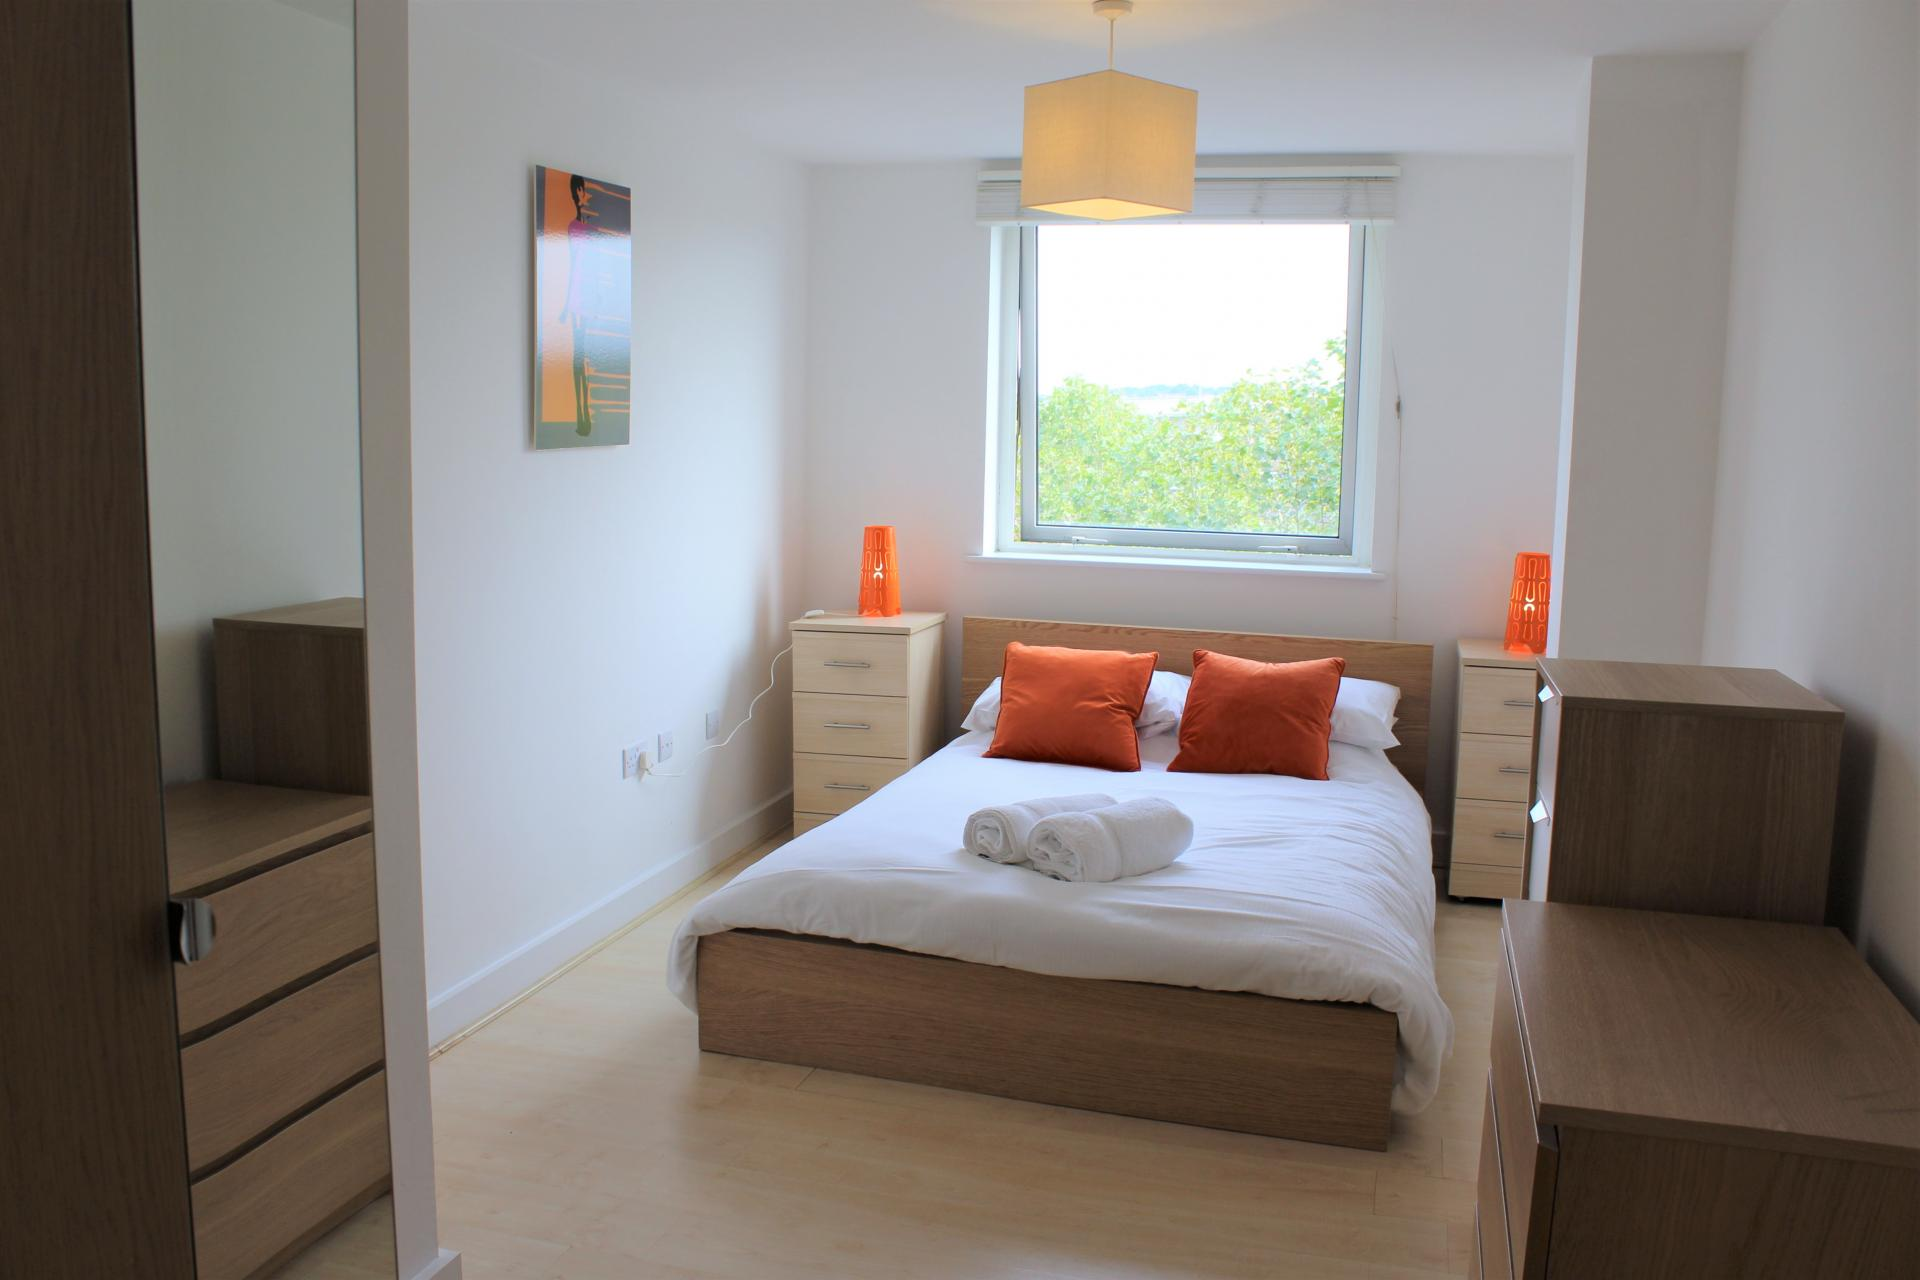 Bedroom at Ocean Village Serviced Apartments - Citybase Apartments